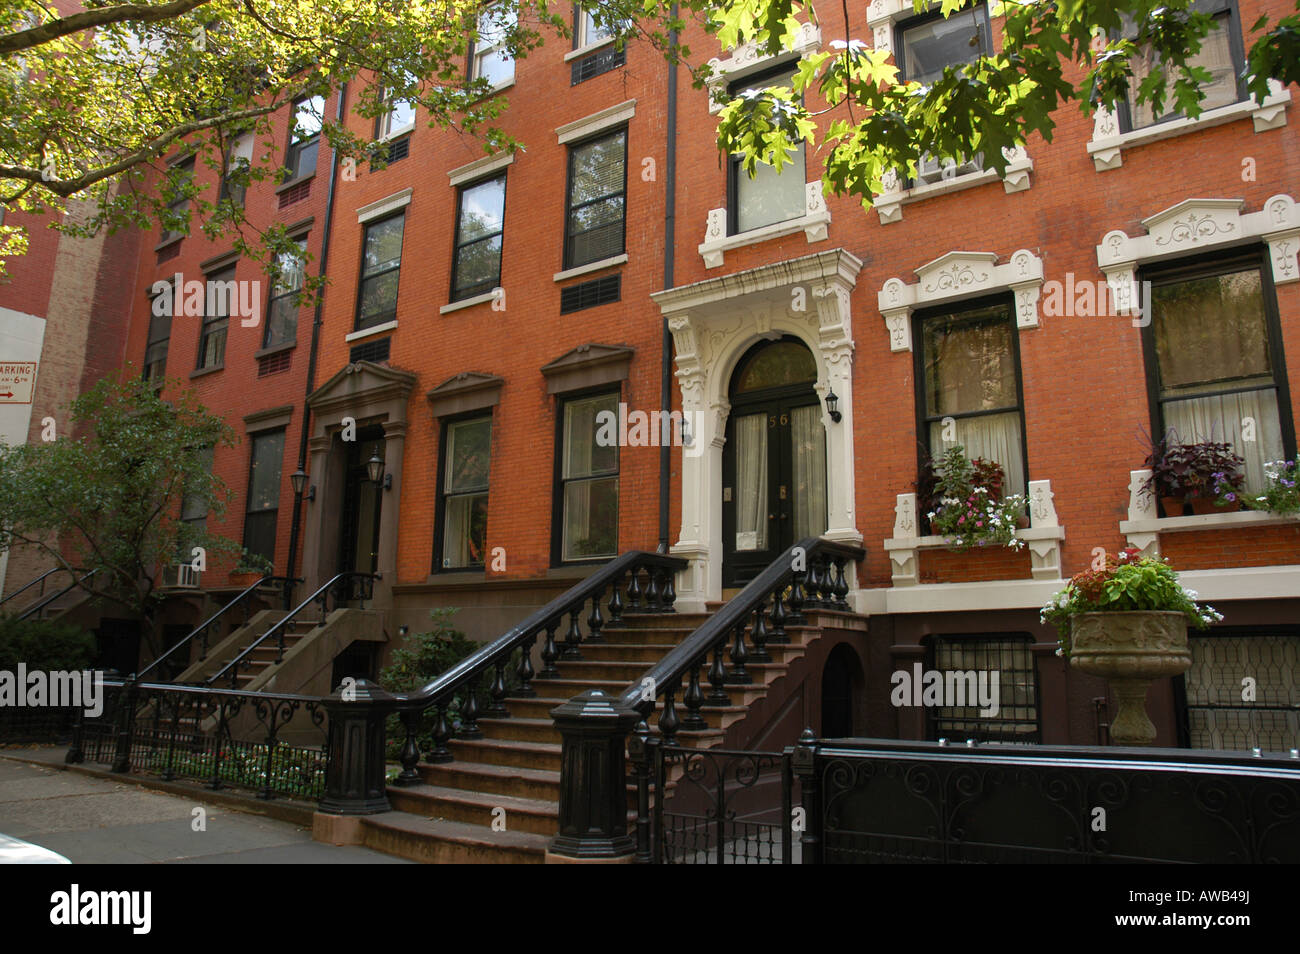 Houses in brooklyn heights new york usa stock photo for Buying a house in brooklyn